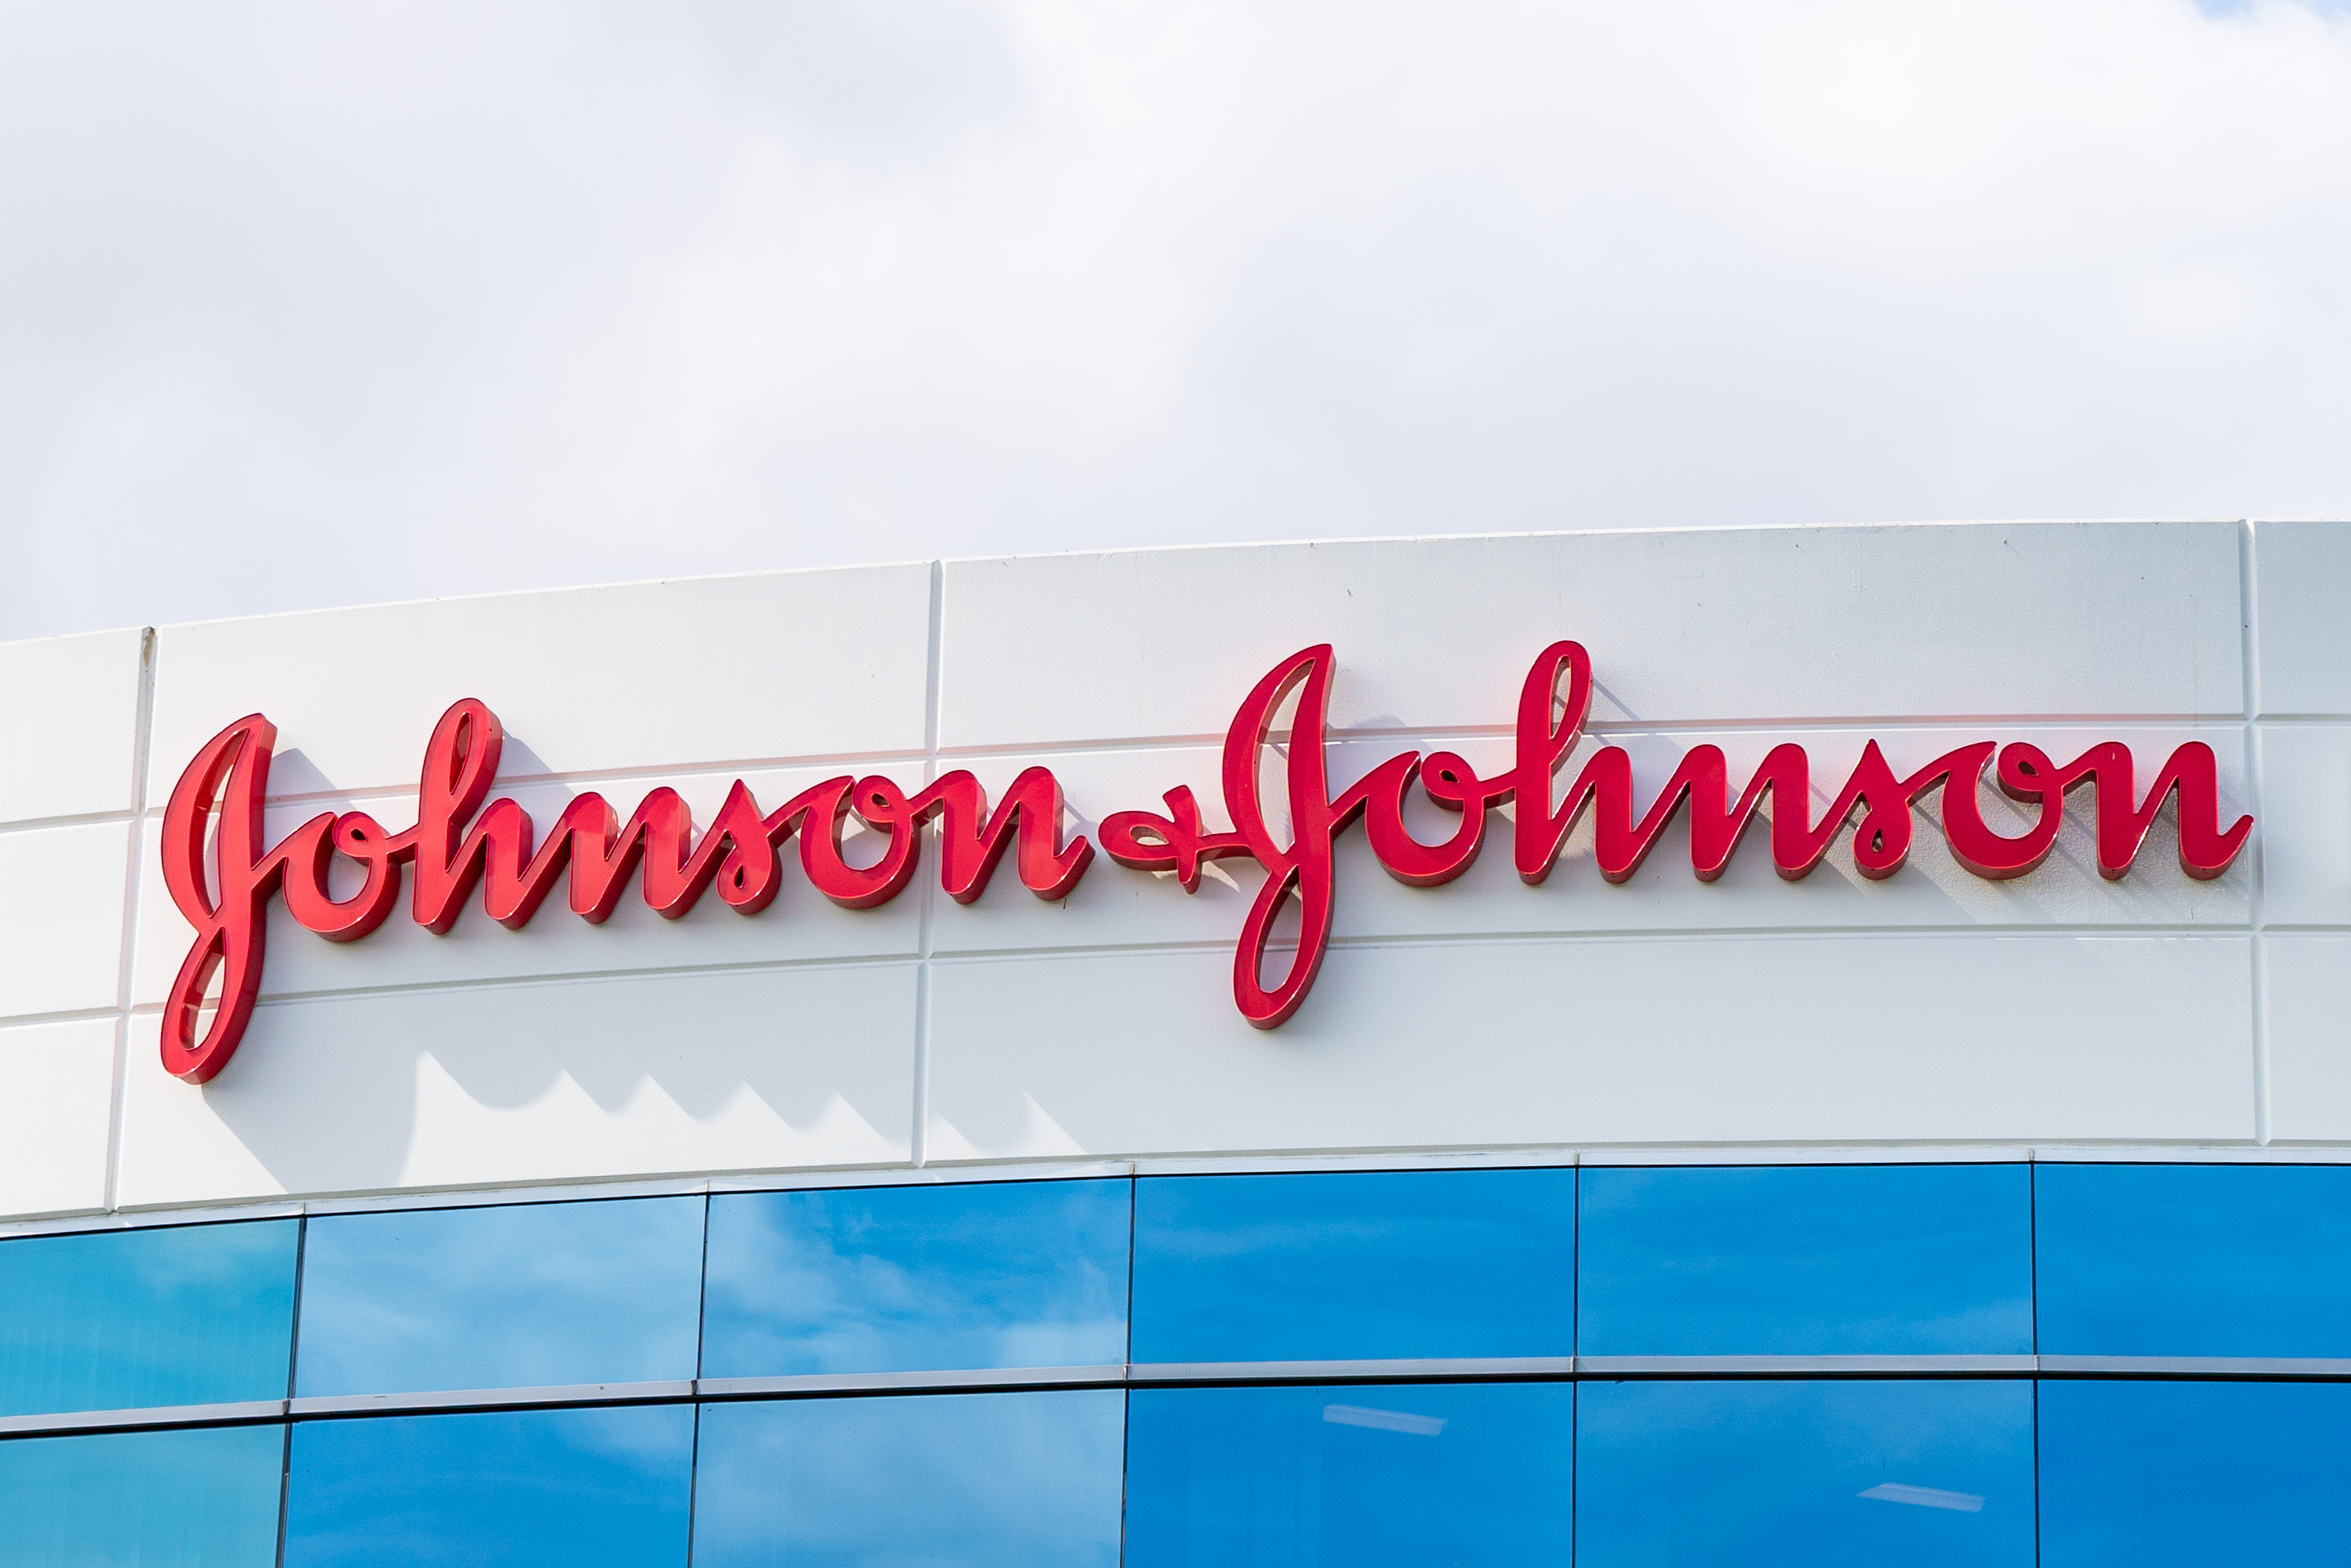 What we know about the Johnson & Johnson COVID vaccine